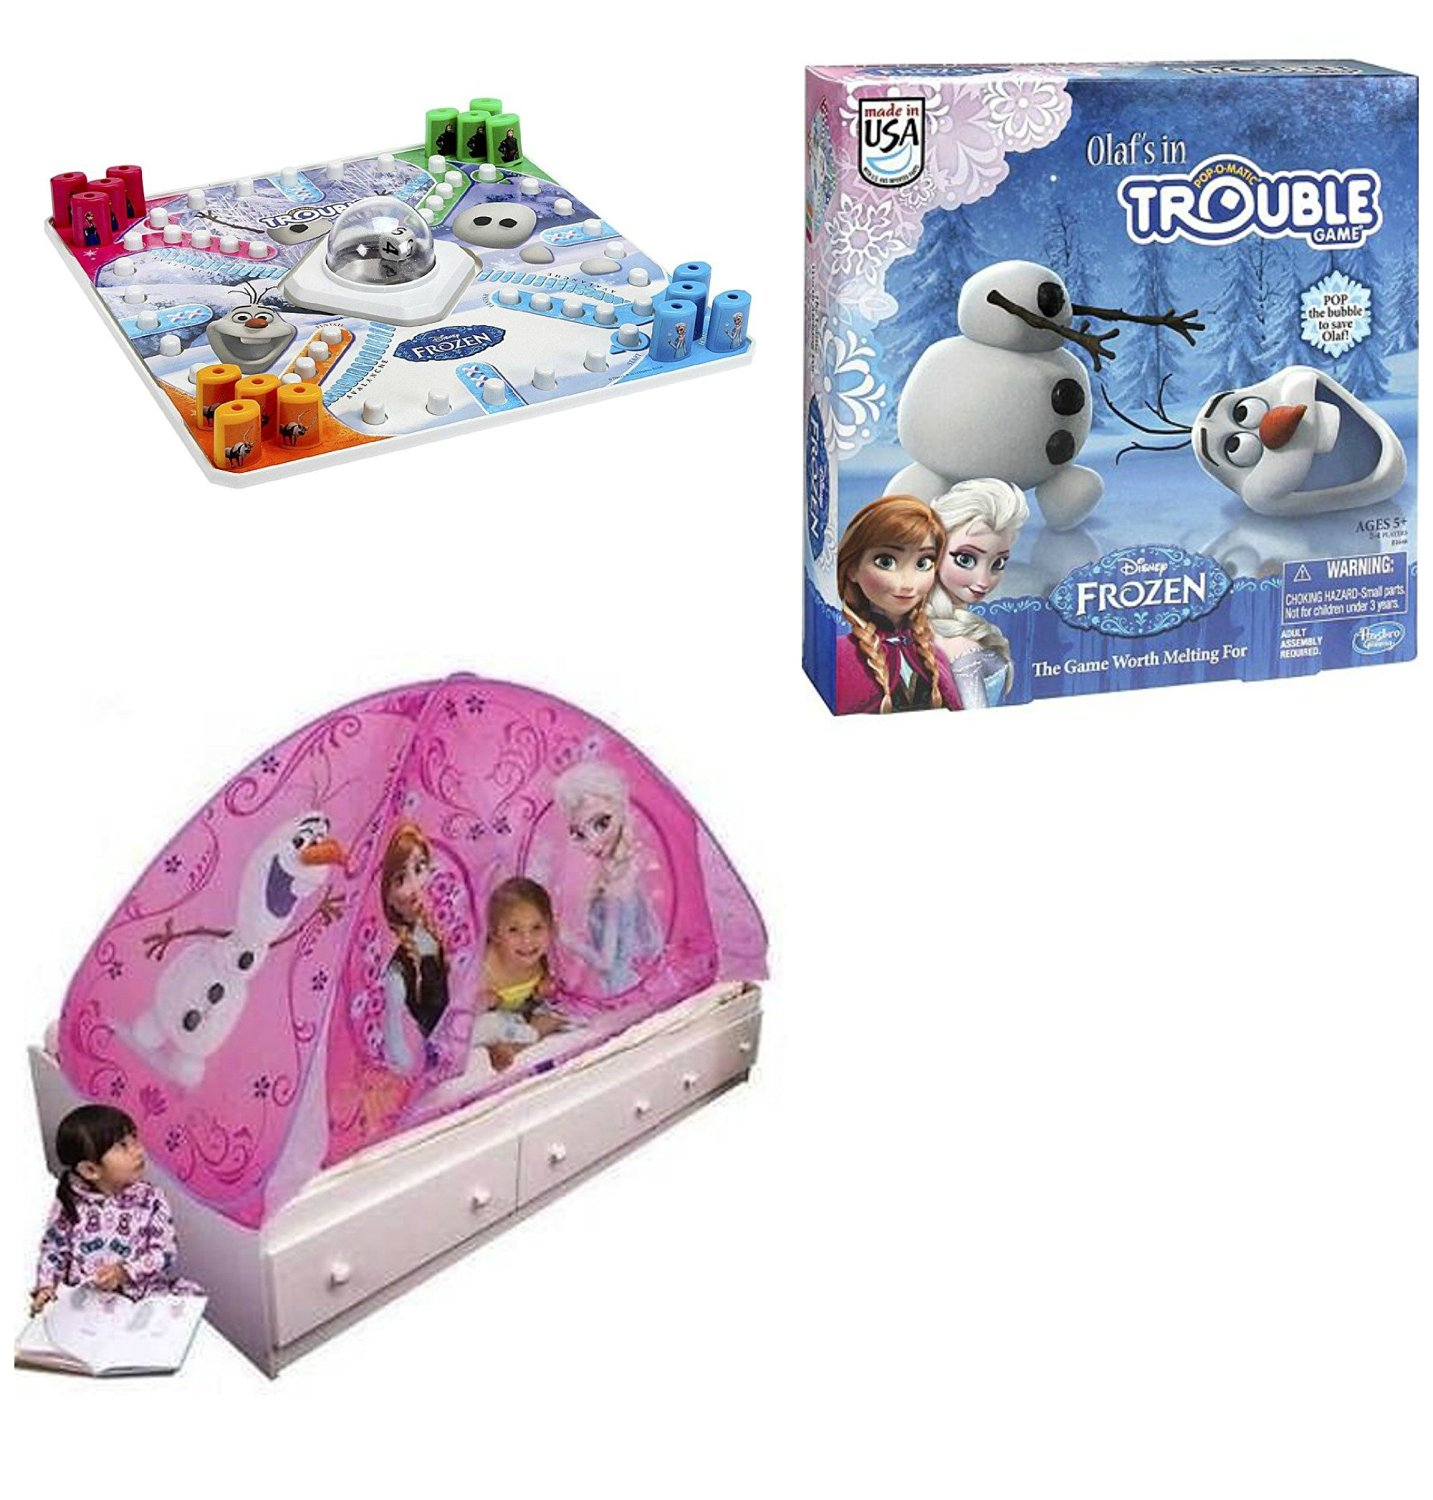 Disney Frozen Light up Tent & Olafs in Trouble Game